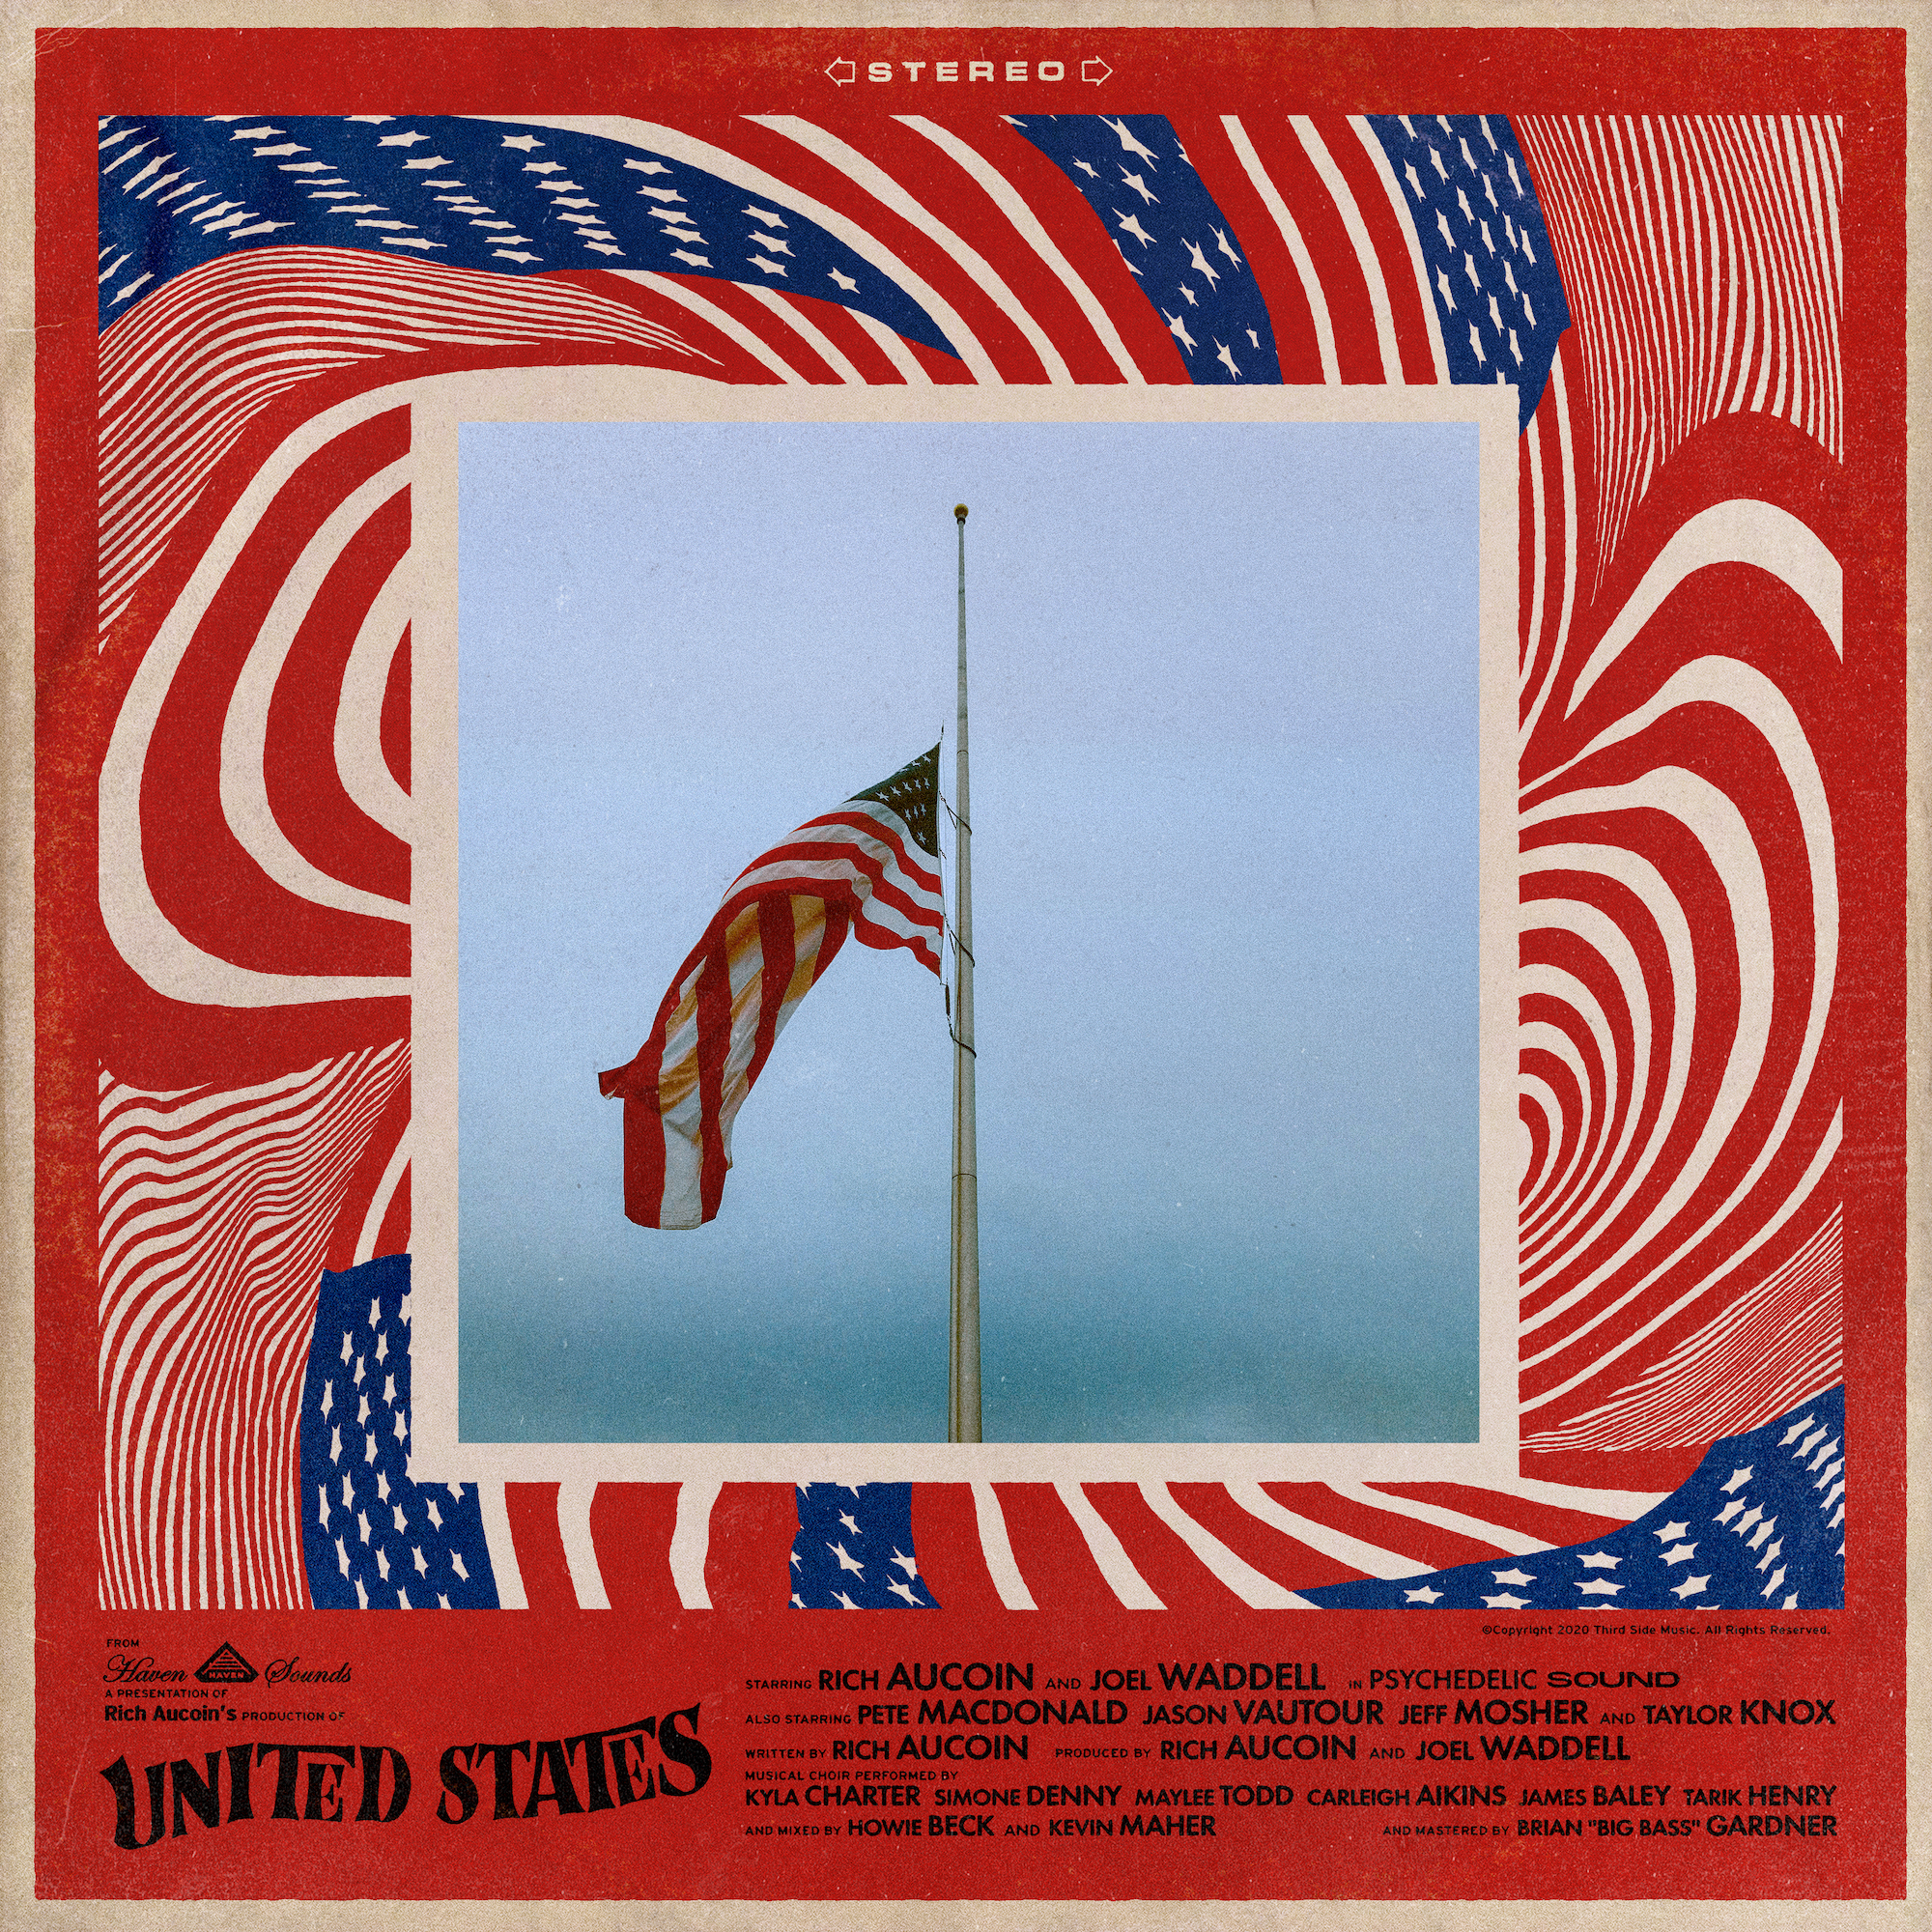 United States Deluxe Image